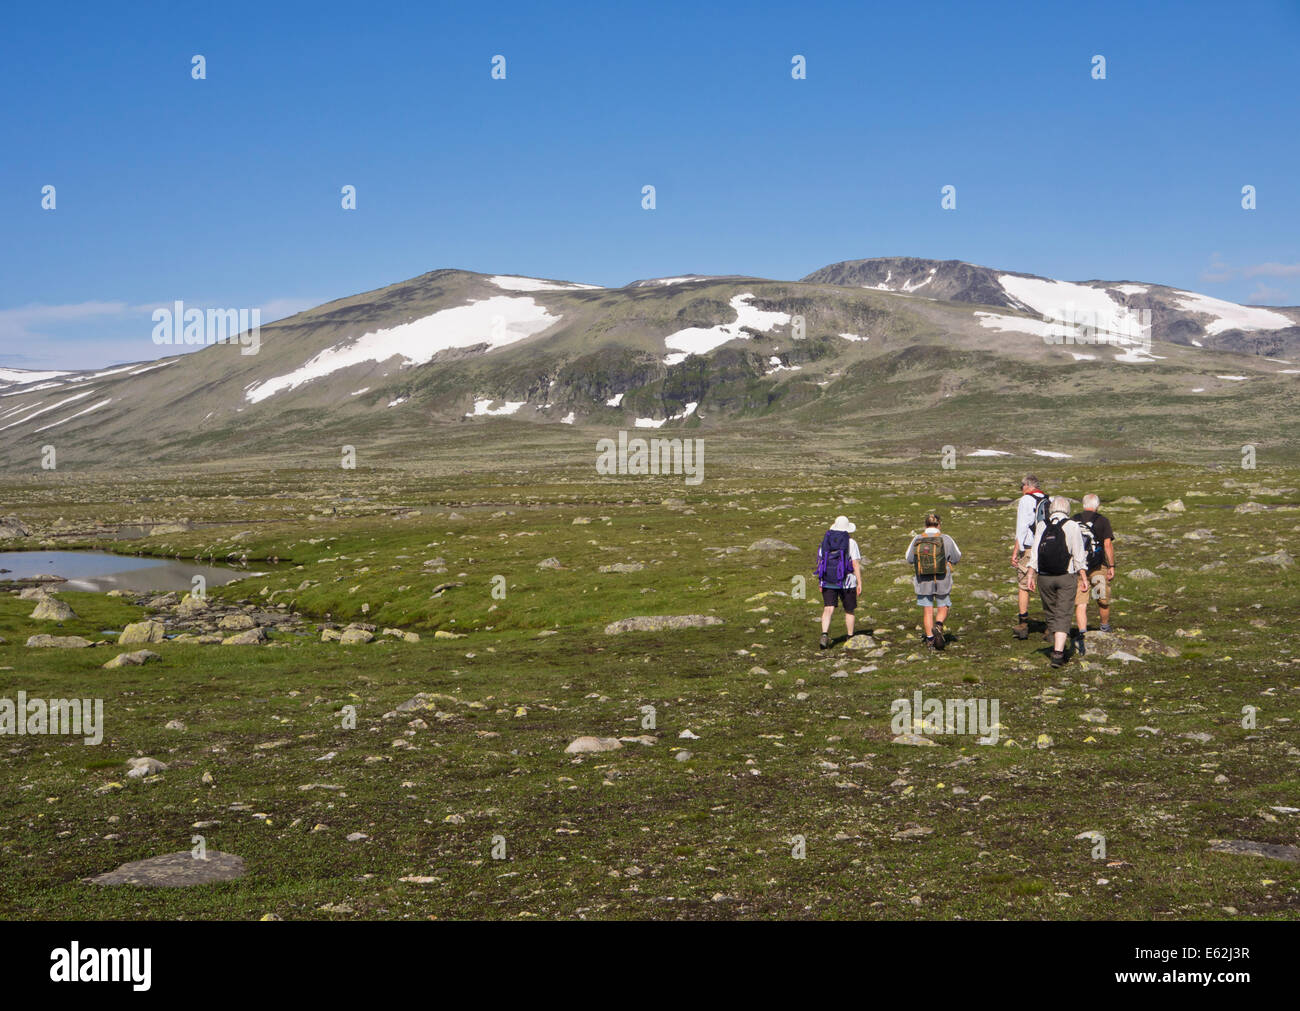 Hikers on a footpath across Valdresflya in Jotunheimen Norway, barren but inviting in the summer sun, heading for - Stock Image